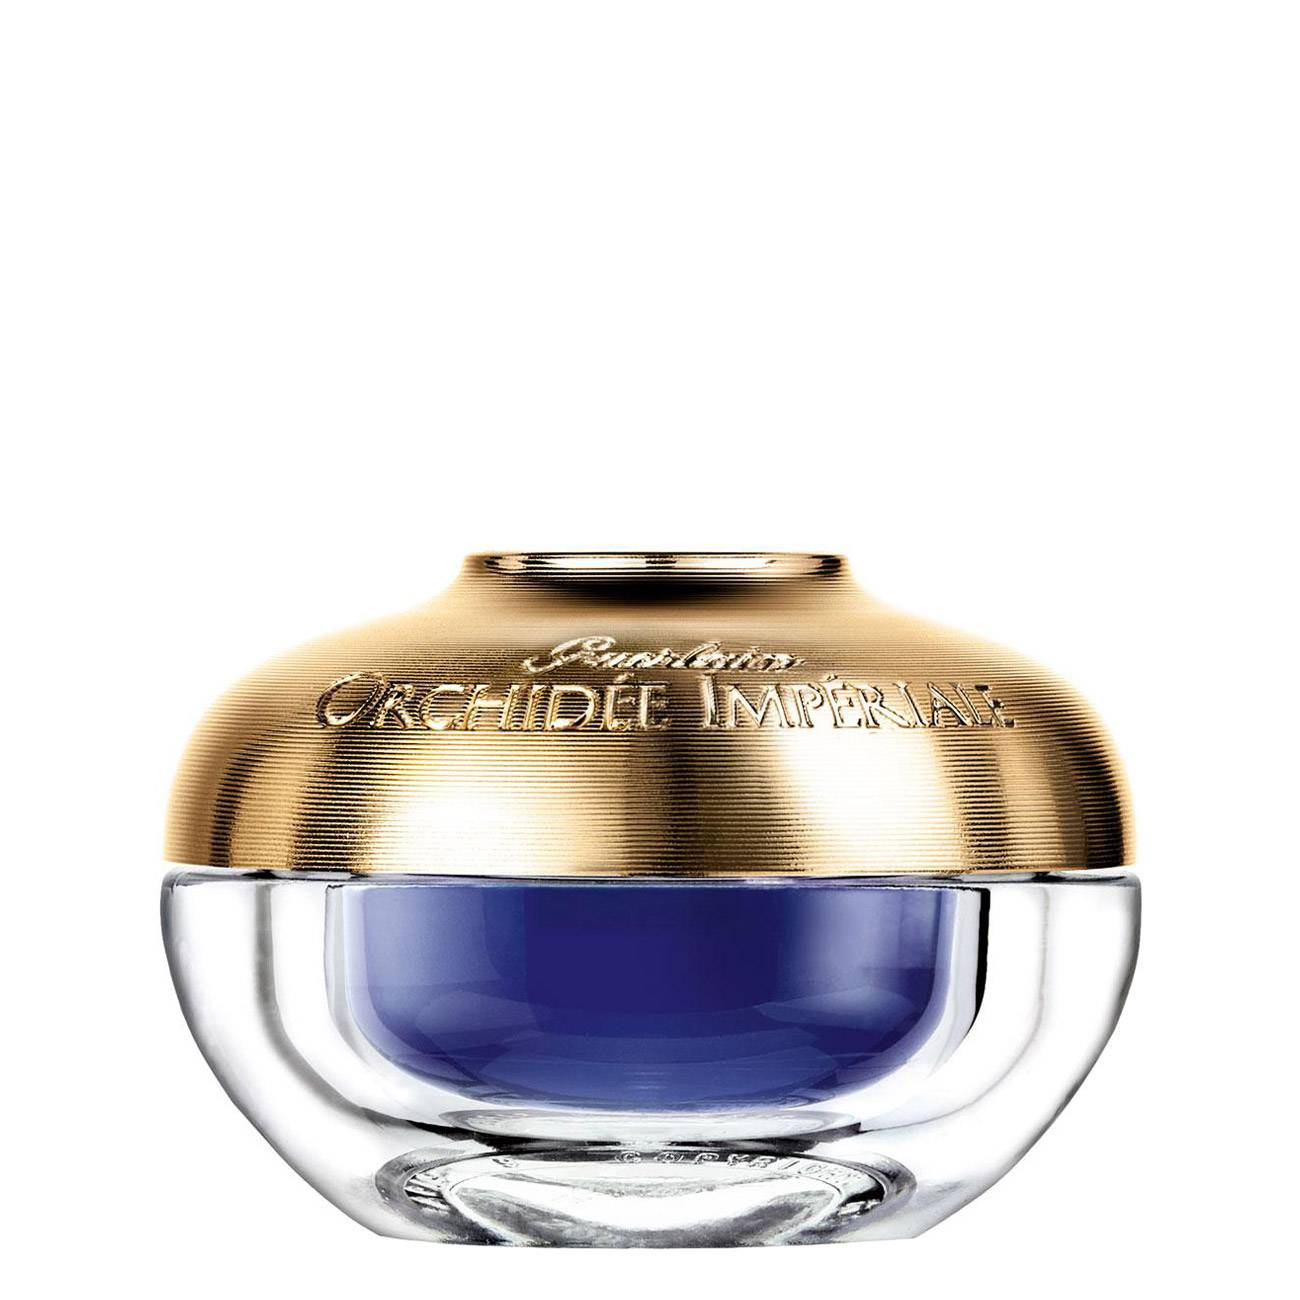 Orchidee Imperiale 50 Ml Guerlain imagine 2021 bestvalue.eu